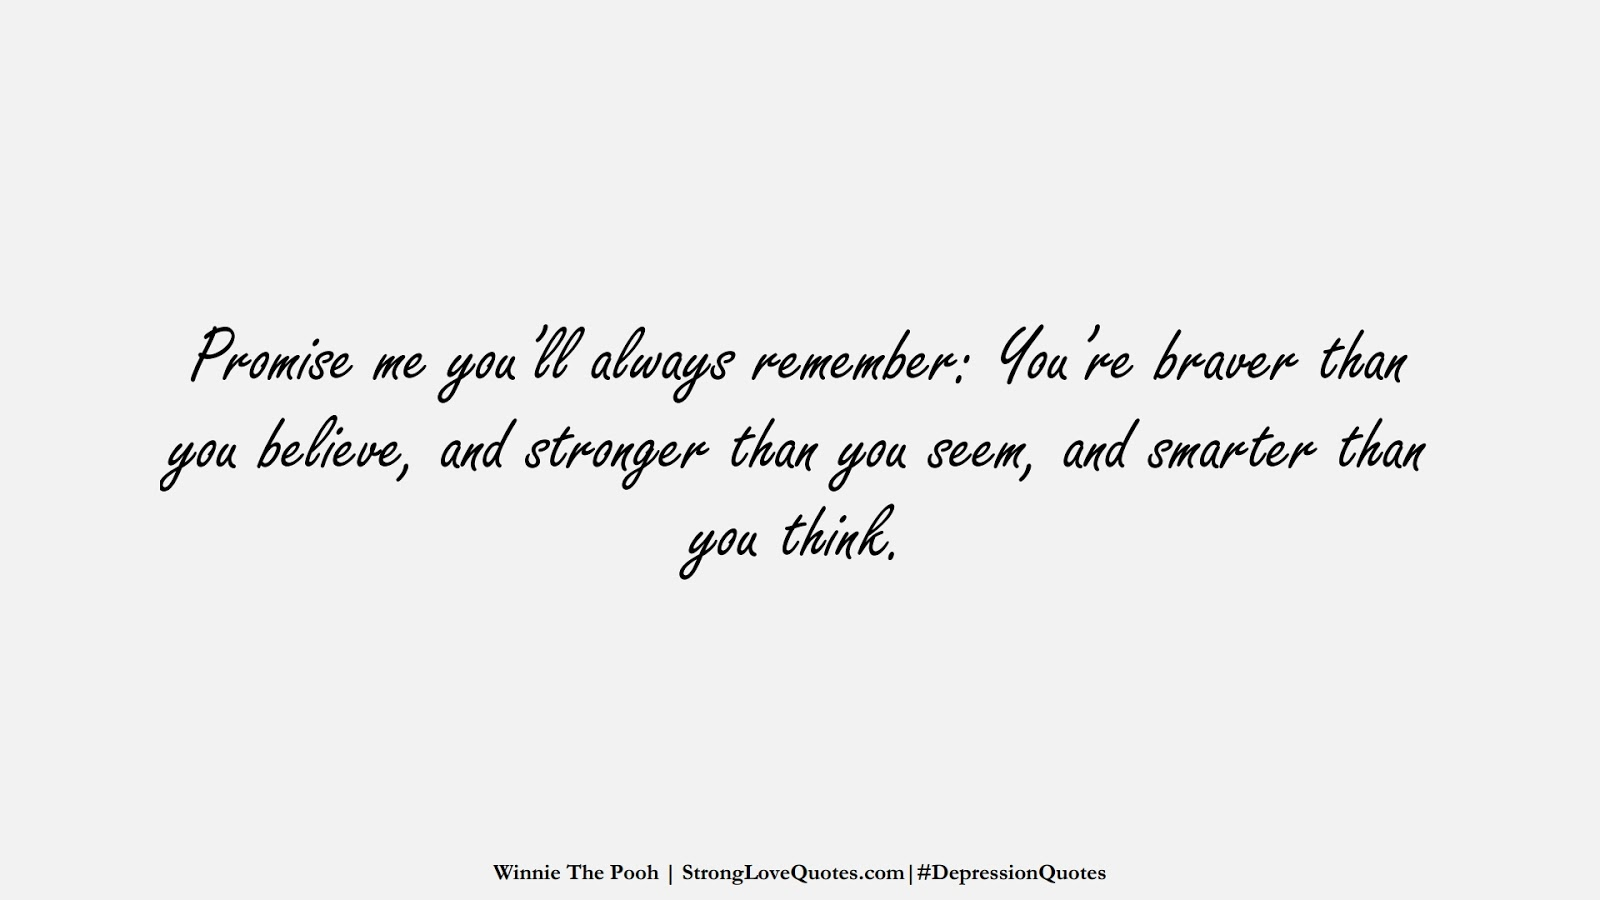 Promise me you'll always remember: You're braver than you believe, and stronger than you seem, and smarter than you think. (Winnie The Pooh);  #DepressionQuotes